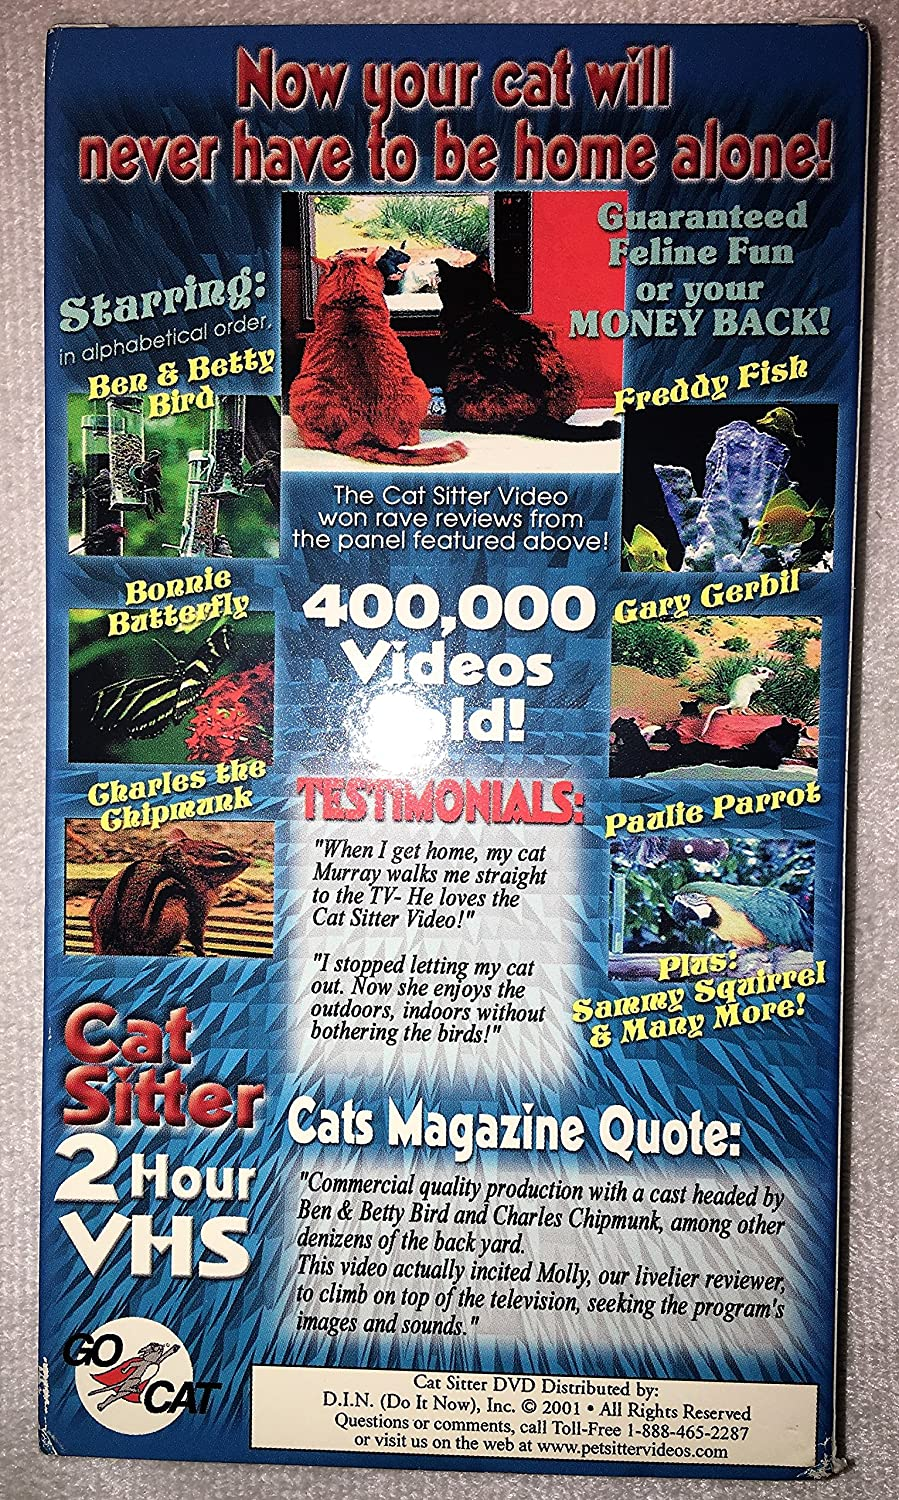 Amazon.com: Cat Sitter - 2 Hour VHS - The Video Cats LOVE To Watch ...